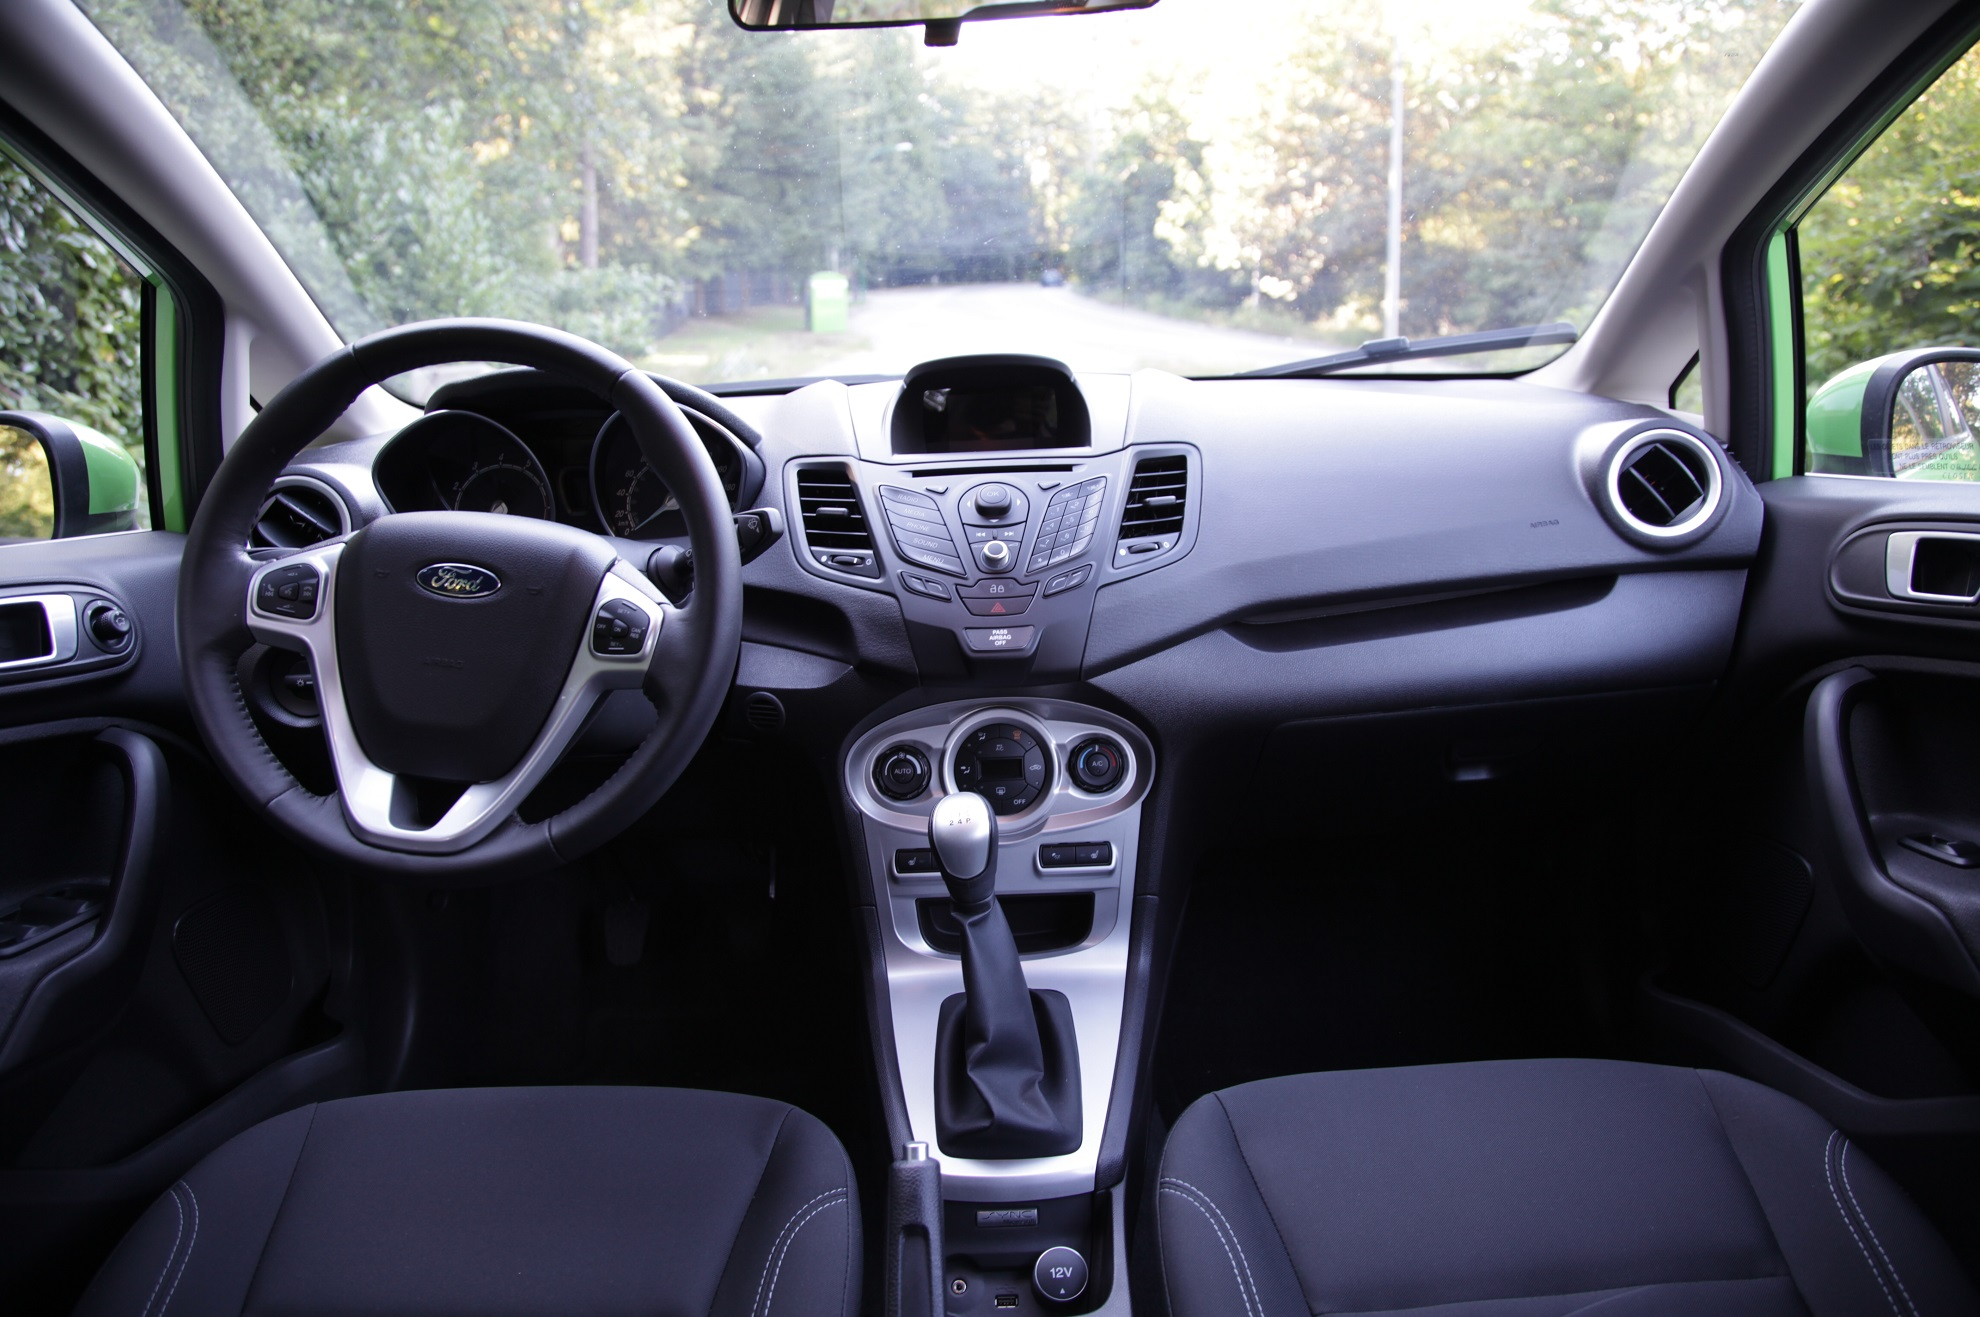 Ford Fiesta 1.0 interior